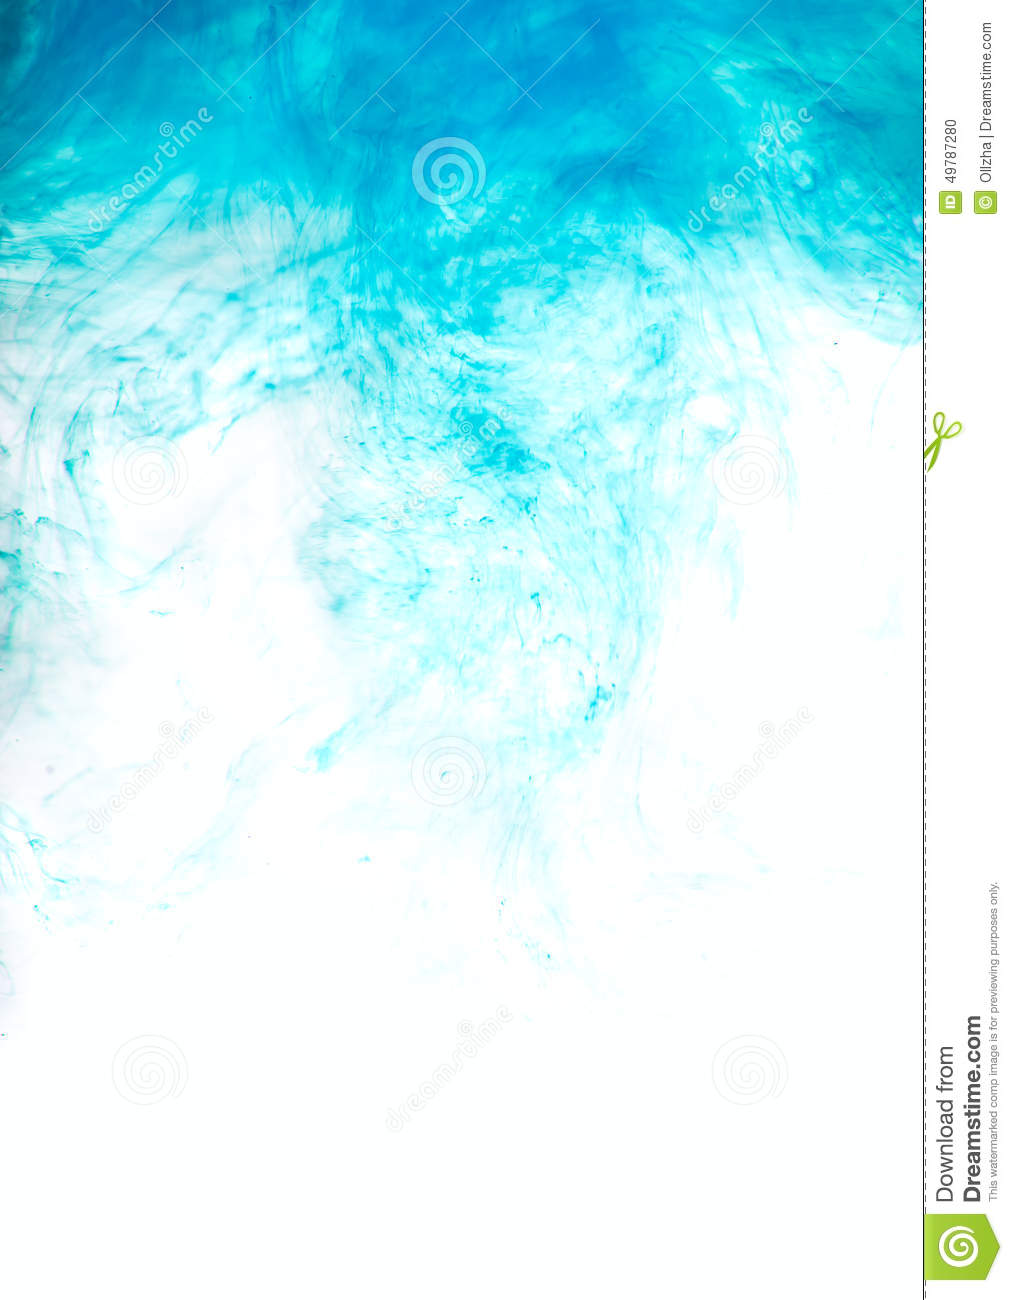 blue paint in water abstract isolated background stock photo